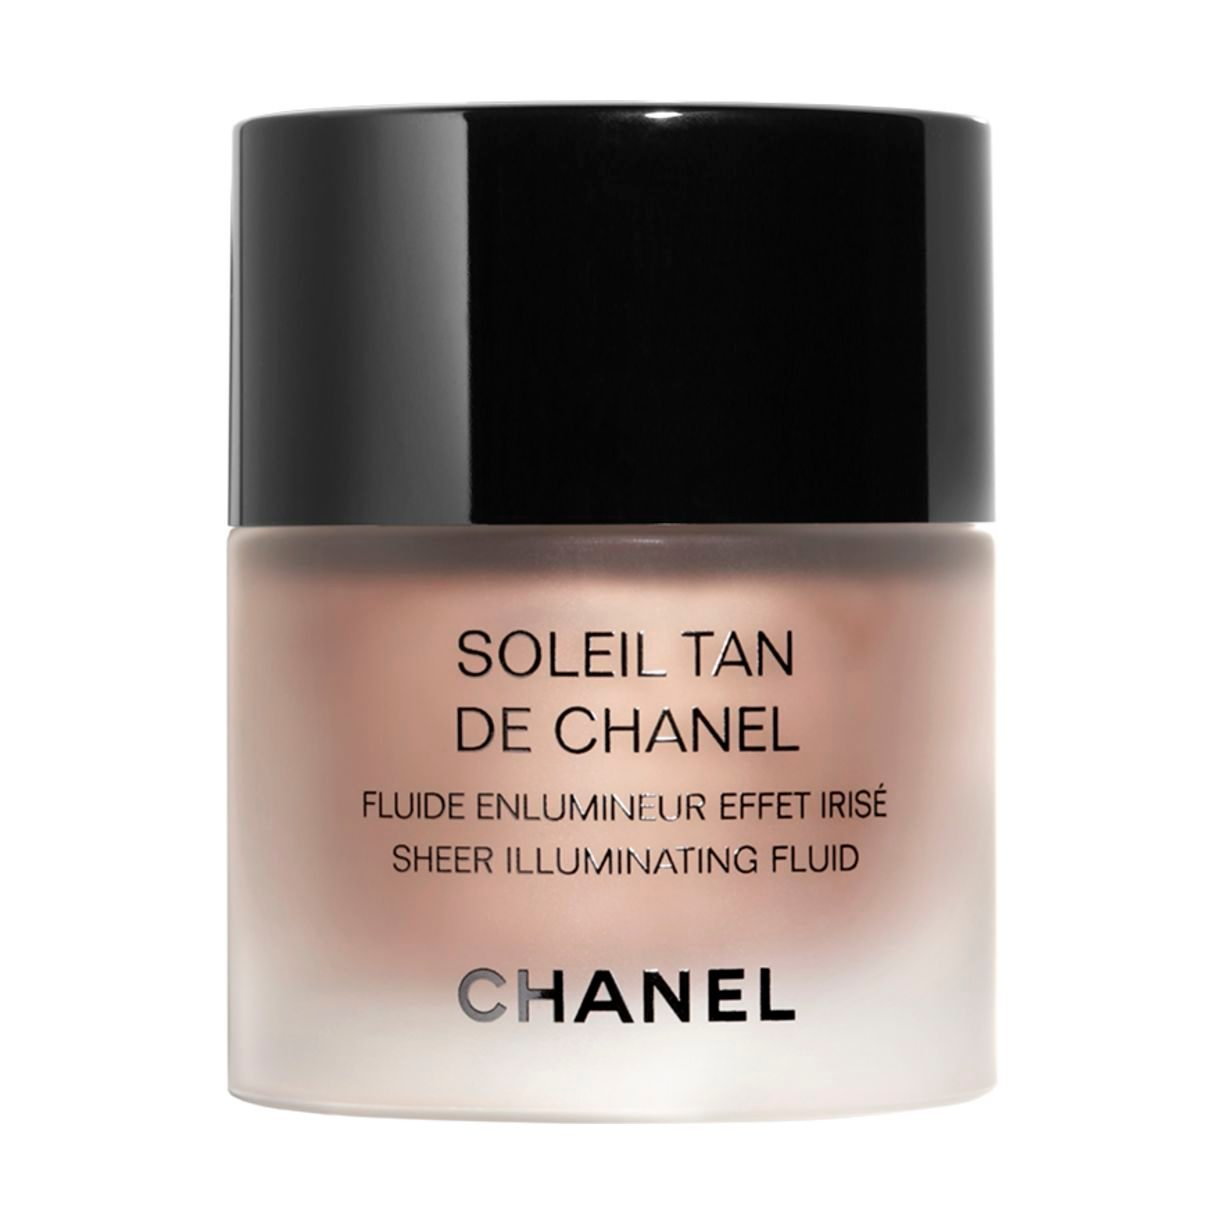 SOLEIL TAN DE CHANEL SHEER ILLUMINATING FLUID SUNKISSED 30ML